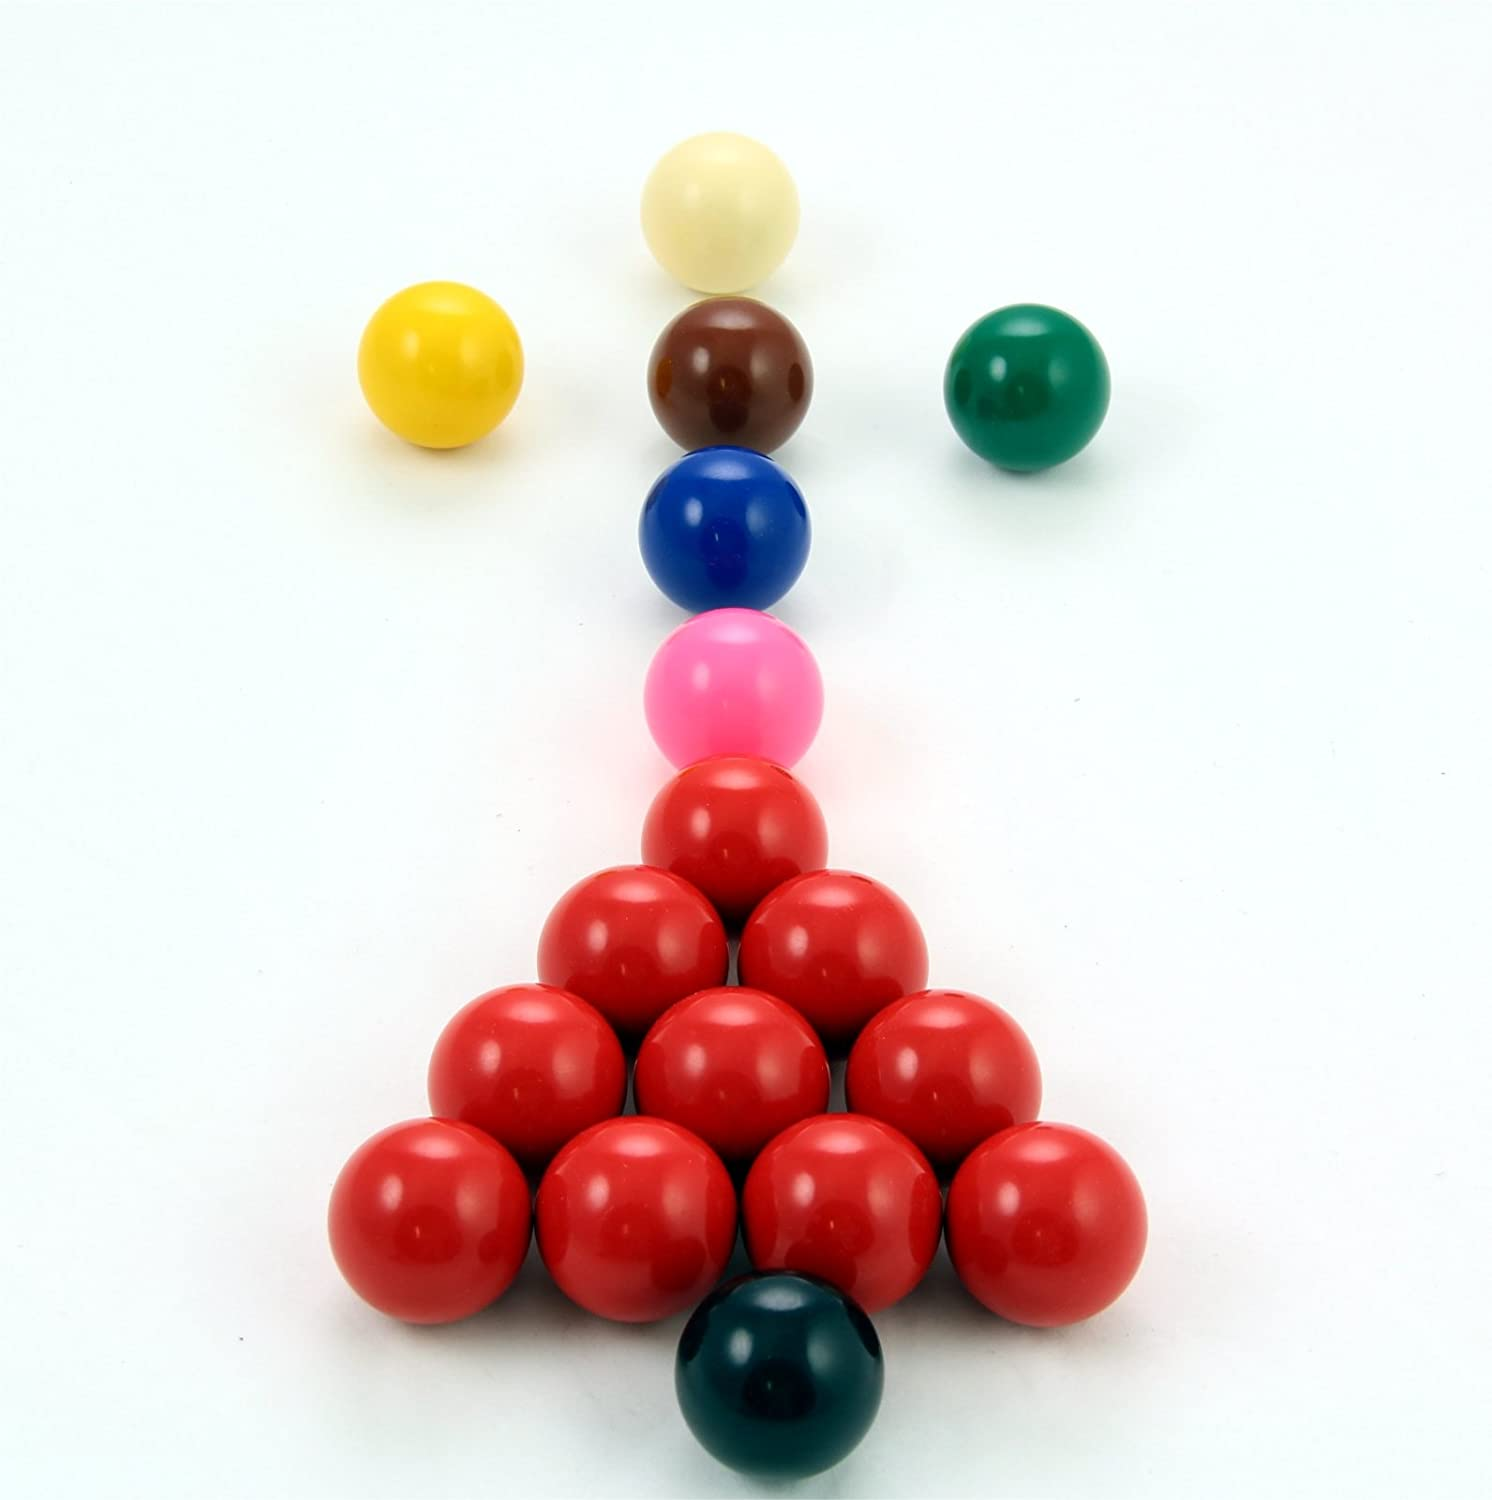 POWERGLIDE / 17 Snooker Ball 1 Inch 1//2 Various,1.5 Inch Unisex